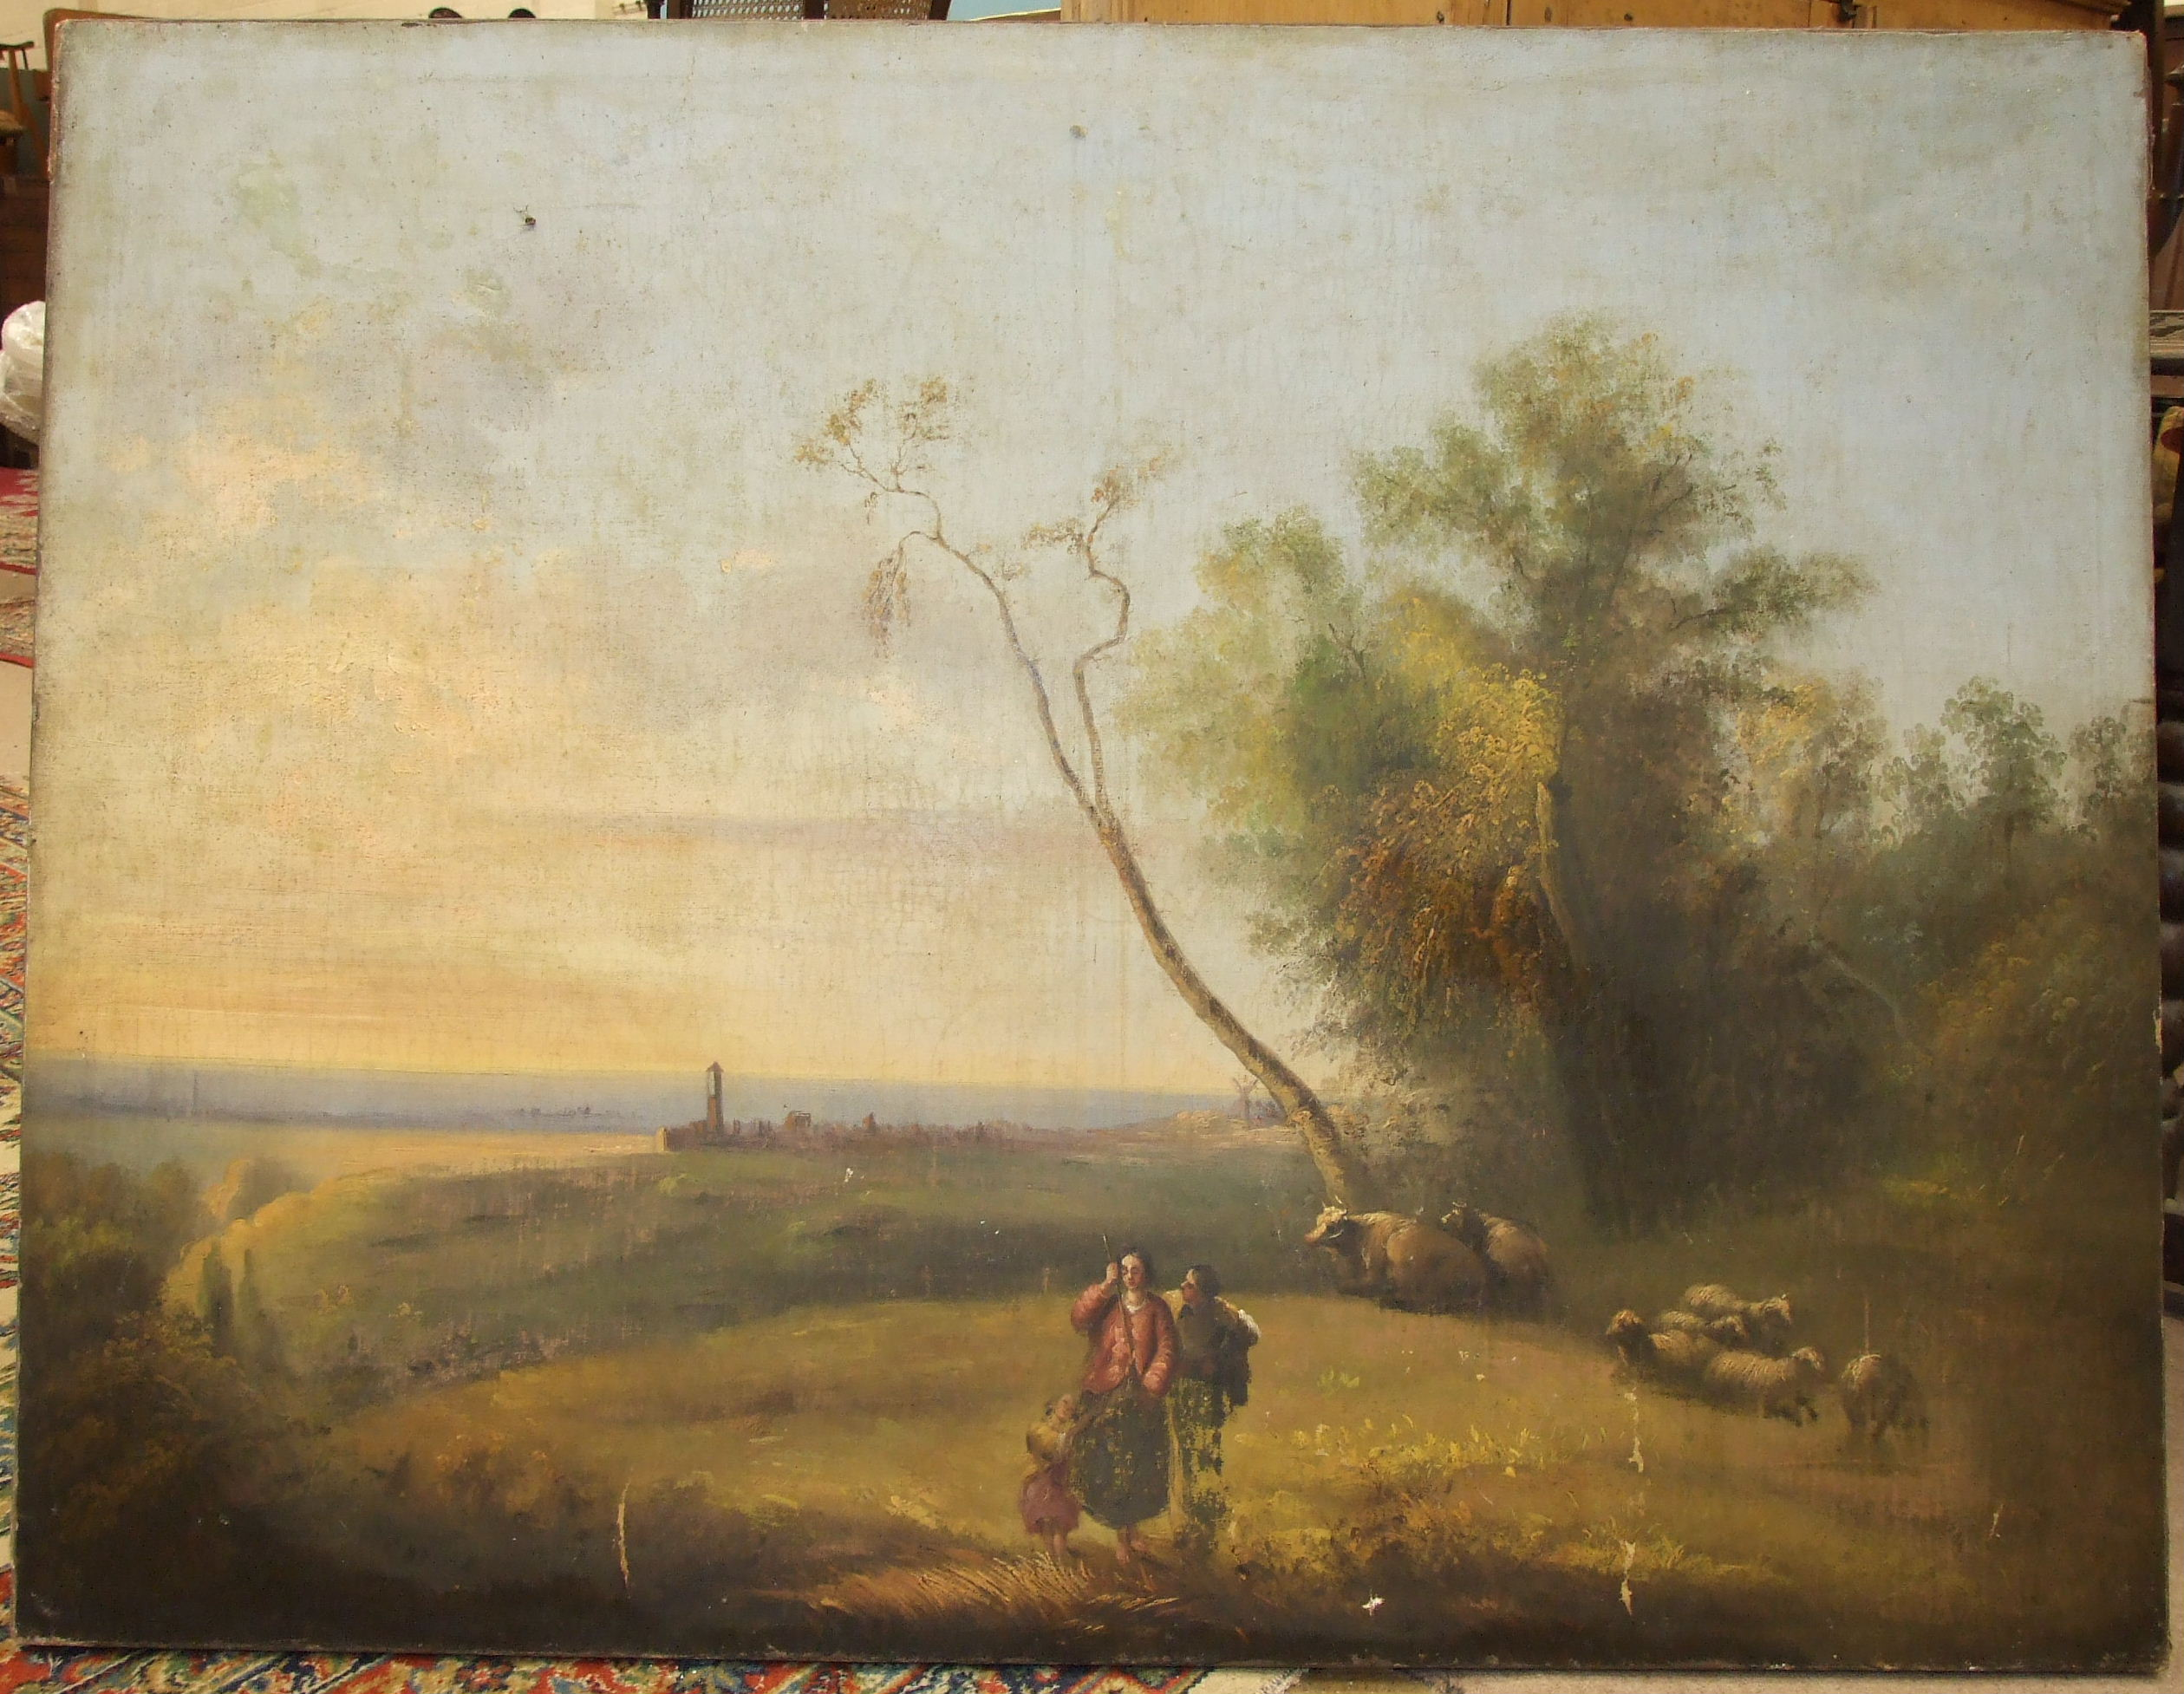 Lot 54 - 19th century Continental School LANDSCAPE WITH FIGURES AND SHEEP IN THE FOREGROUND Oil on canvas,